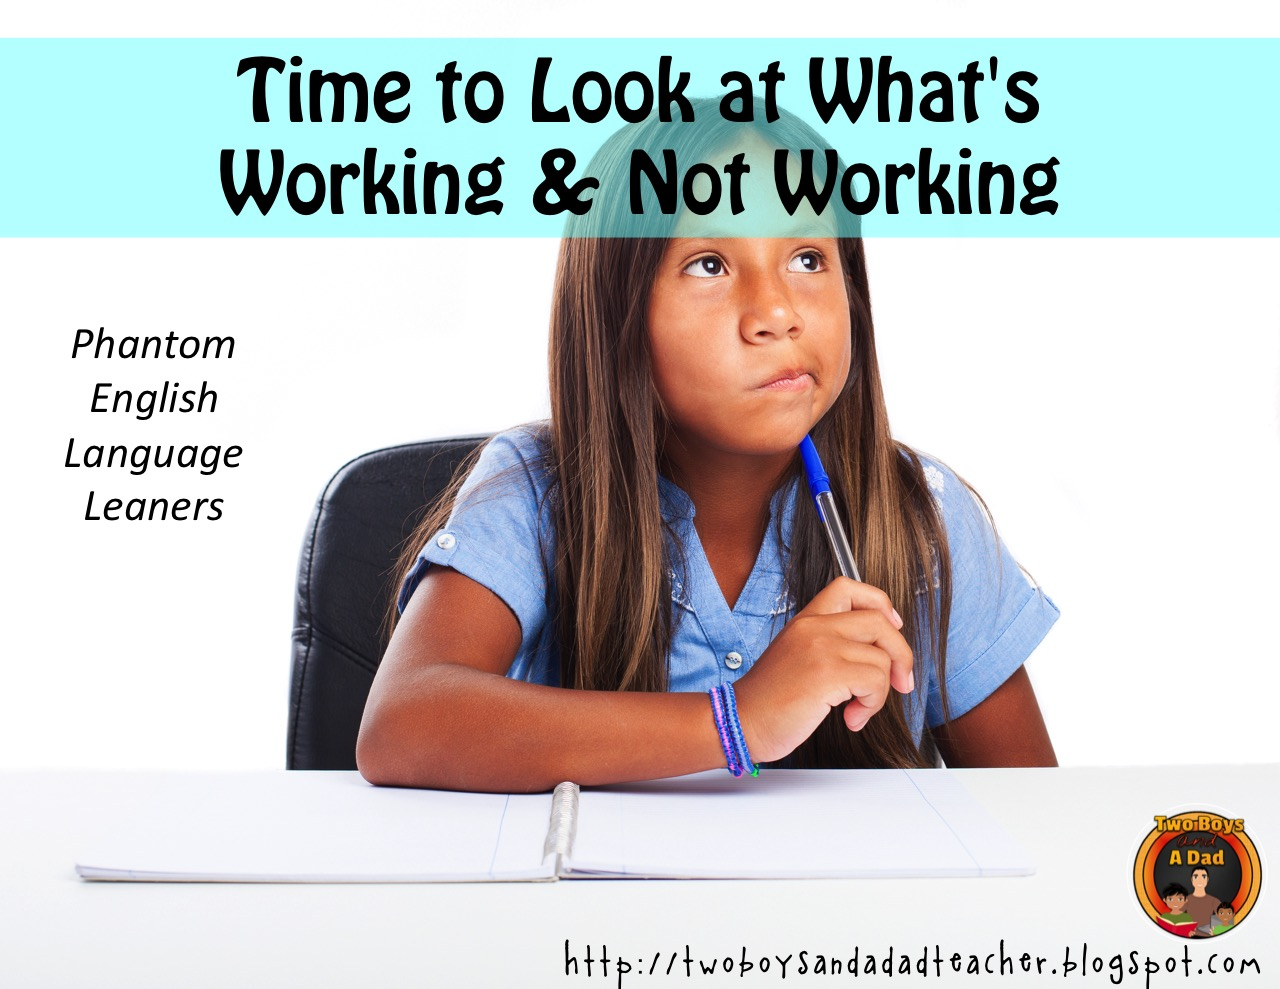 Time to Look at What's Working and Not Working